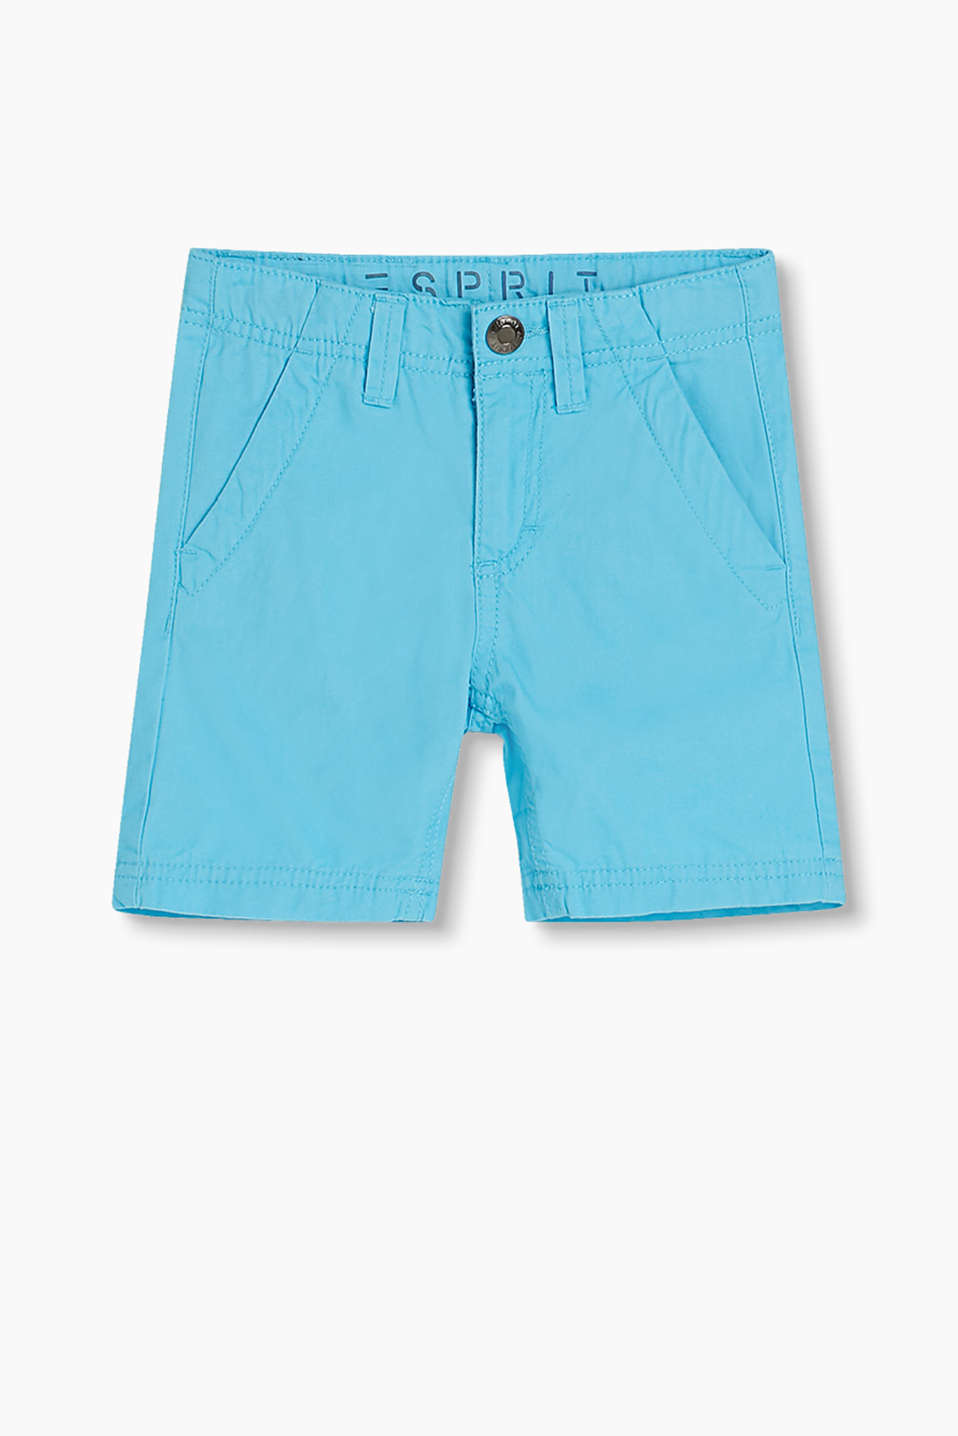 Esprit - 100% cotton Bermudas